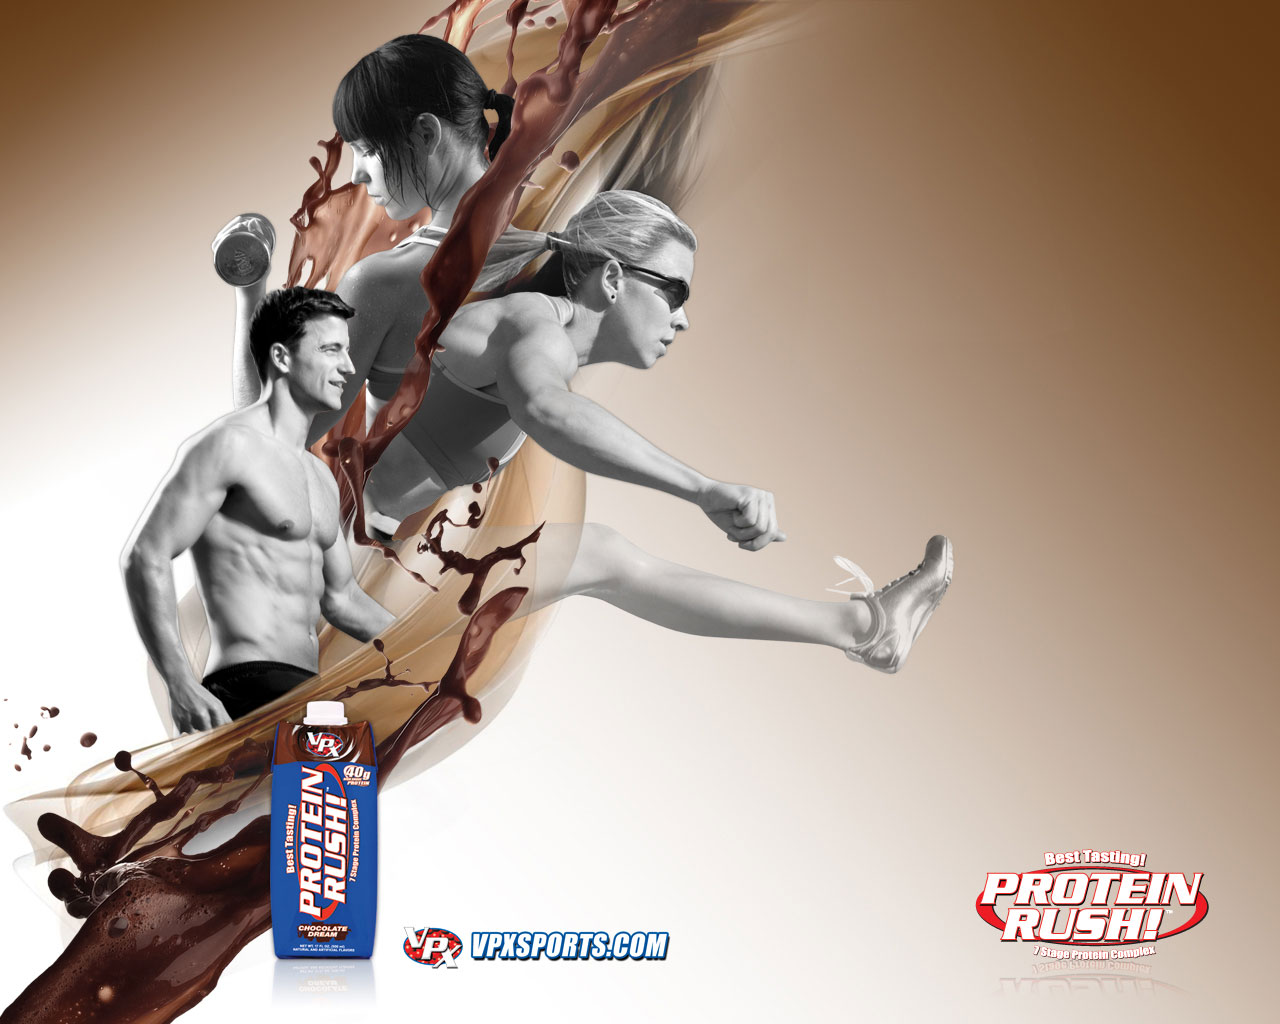 best post workout cycle • best post workout supplement • best post workout supplement 2011 • best post workout supplement insulin • best post workout supplement to build muscle • best post workout supplements • best pre workout • best pre workout for fast gains • best pre workout supplement • best pre workout supplement 2011 • best pre workout supplements • best preworkout 2011 • Bodybuilding supplement • building muscle • creatine • cytosport muscle milk whey protein review • gain muscle • get ripped • good post workout supplements • http://musclebuildingjourneys.net/how-to-get-ripped-fast/ • ingredients in cytosport protein shake • is milk the best post workout drink • is muscle milk a good post workout shake? • Leucine • Muscle • muscle mass • muscle milk 100 whey protein reviews • muscle milk sucks • muscle milk whey label • muscle milk whey protein review • musclebuildingjourneys.net • no3 chrome doses for newcomers • Physical exercise • post workout supplement • post workout supplements • post workout supplment with, protien, creatine, mal • ripped fast • the best post workout supplements • the best pre-workout supplement • top post workout supplements • Vitamin Shoppe • weight lifting workout • weight training • what is the best post workout supplement • Whey • Whey protein